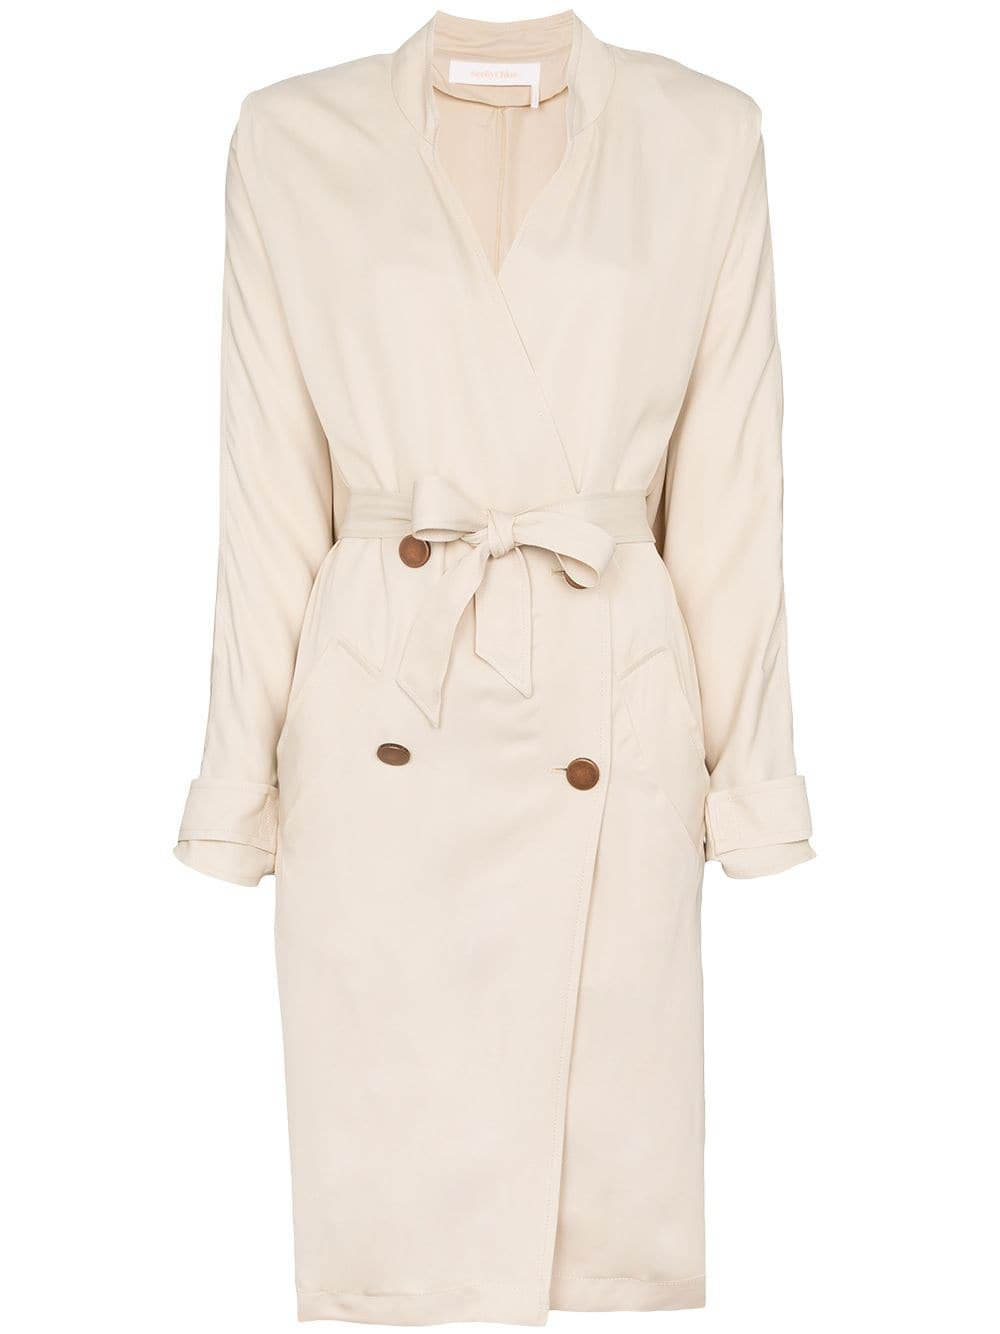 Neutral See By Chloé Collarless Double-Breasted Trench Coat   Farfetch.com